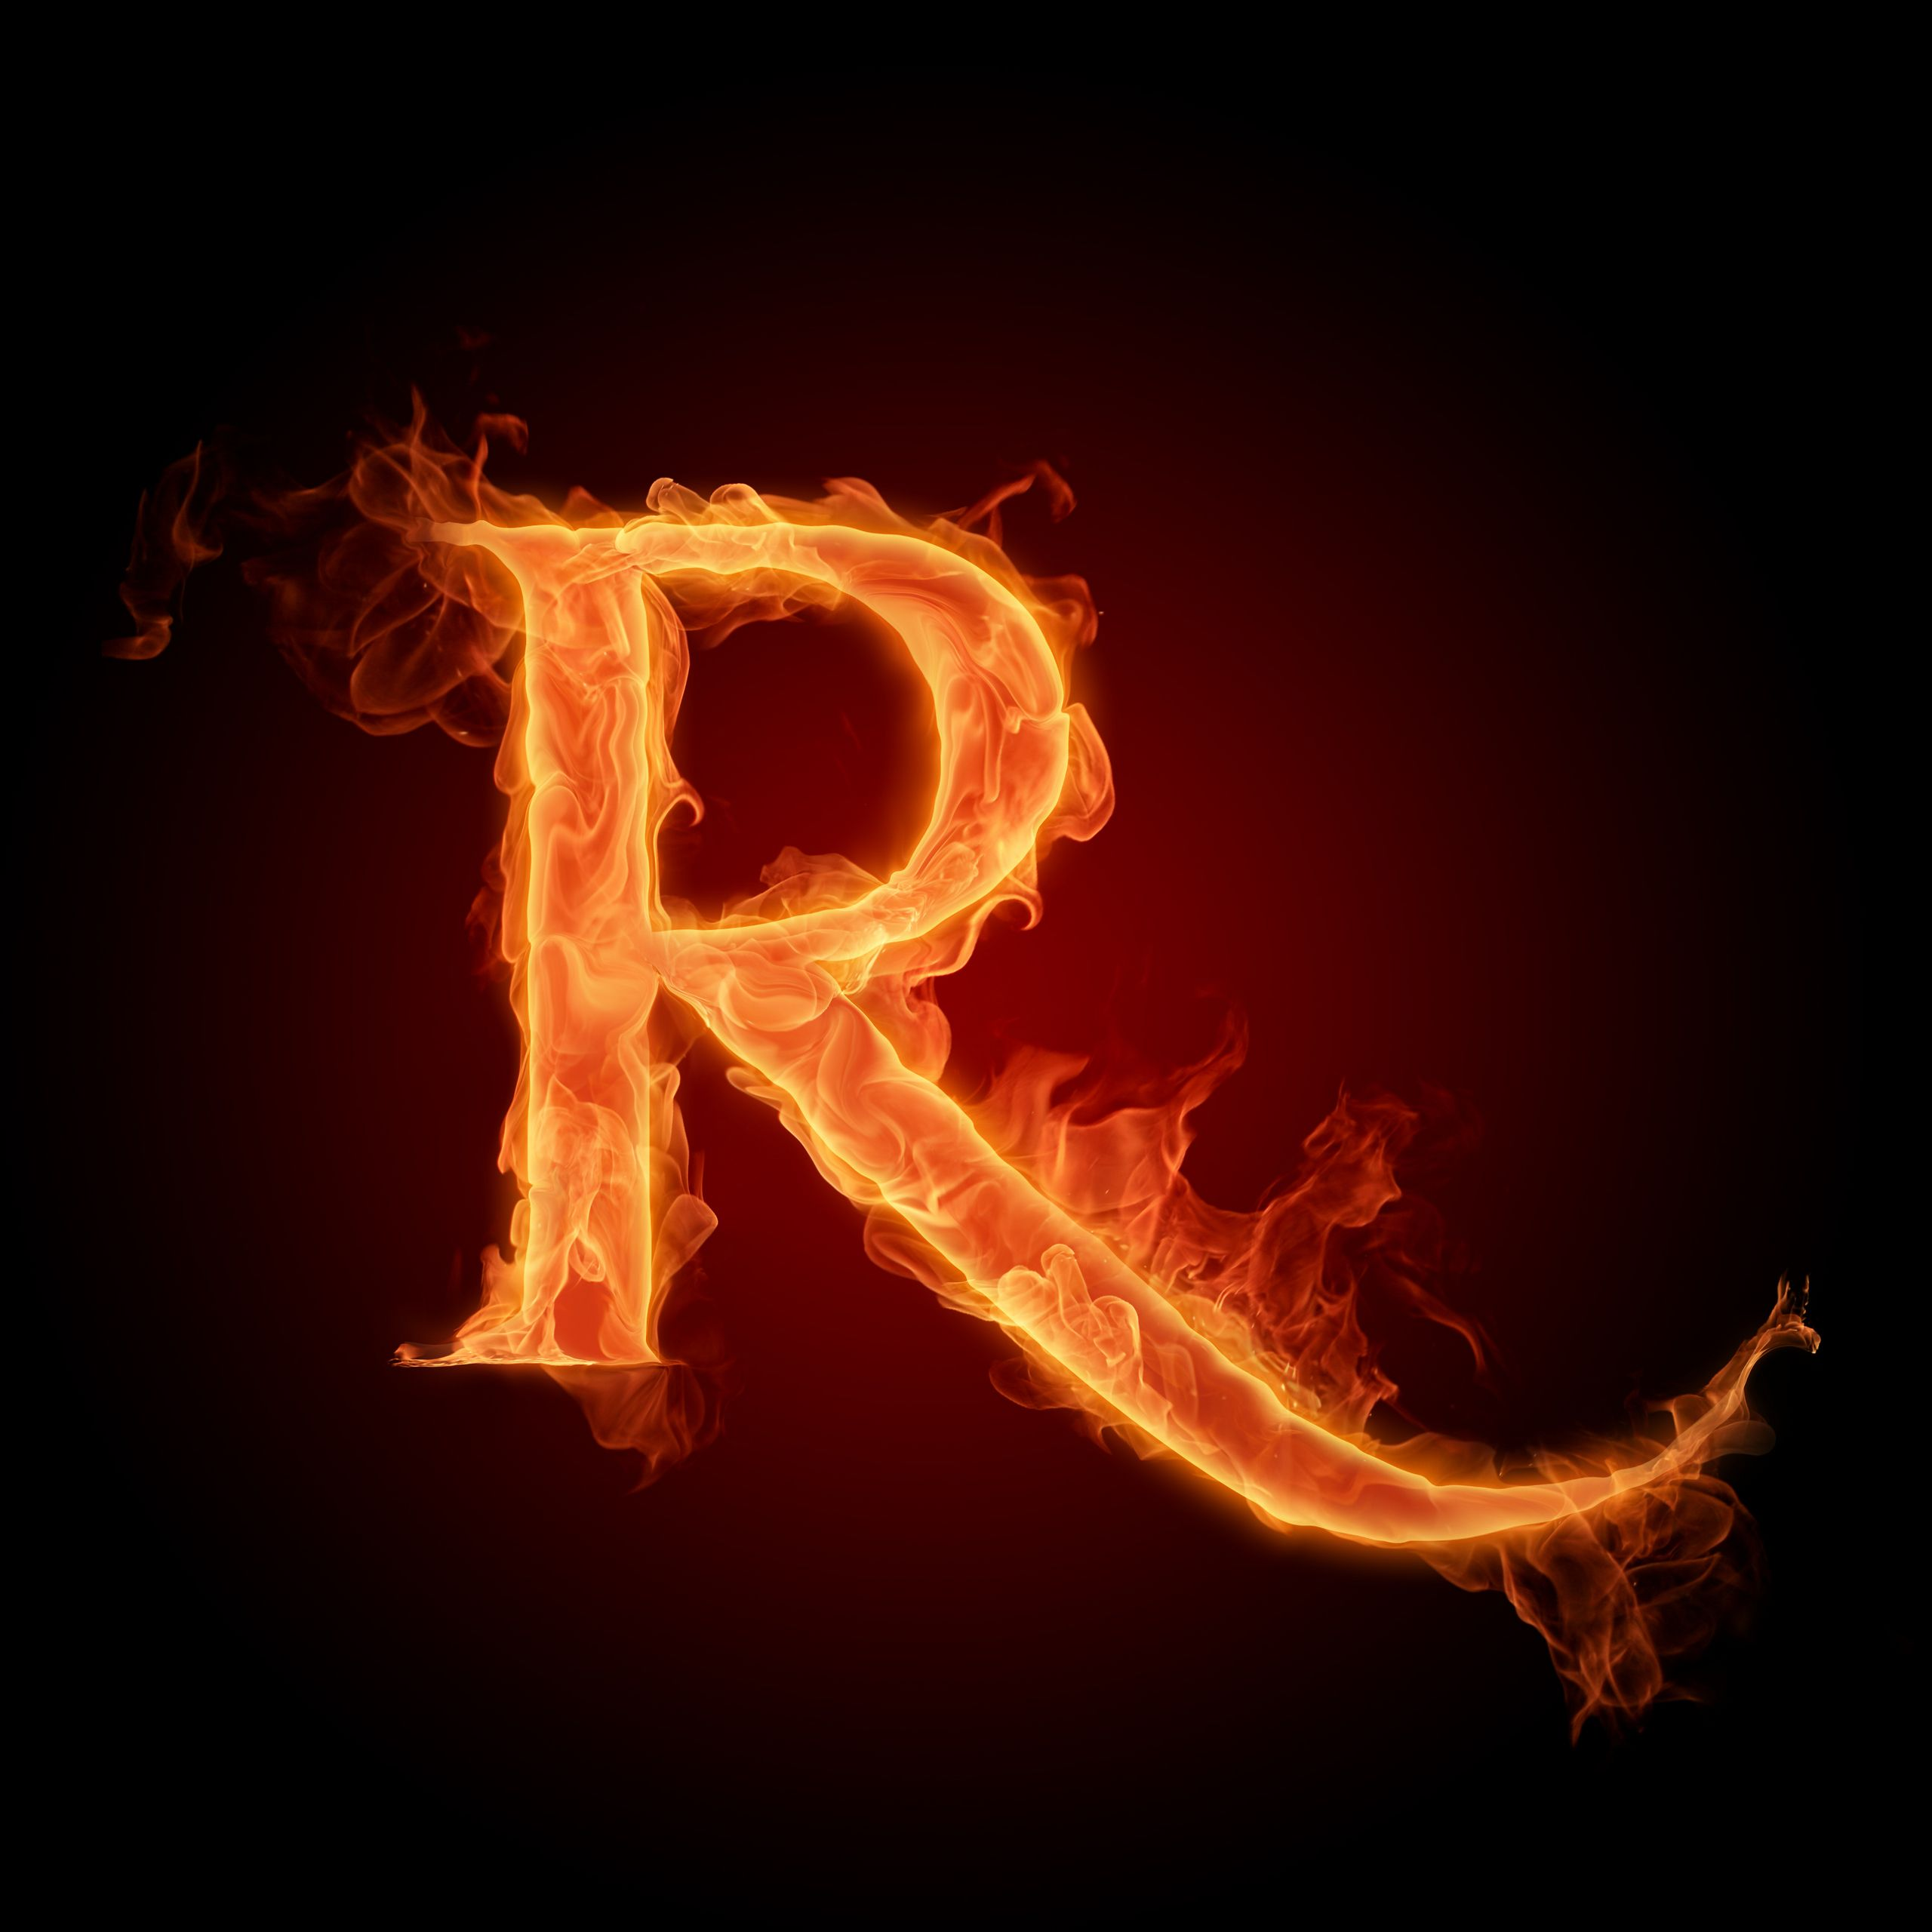 The Alphabet Photo: The letter R